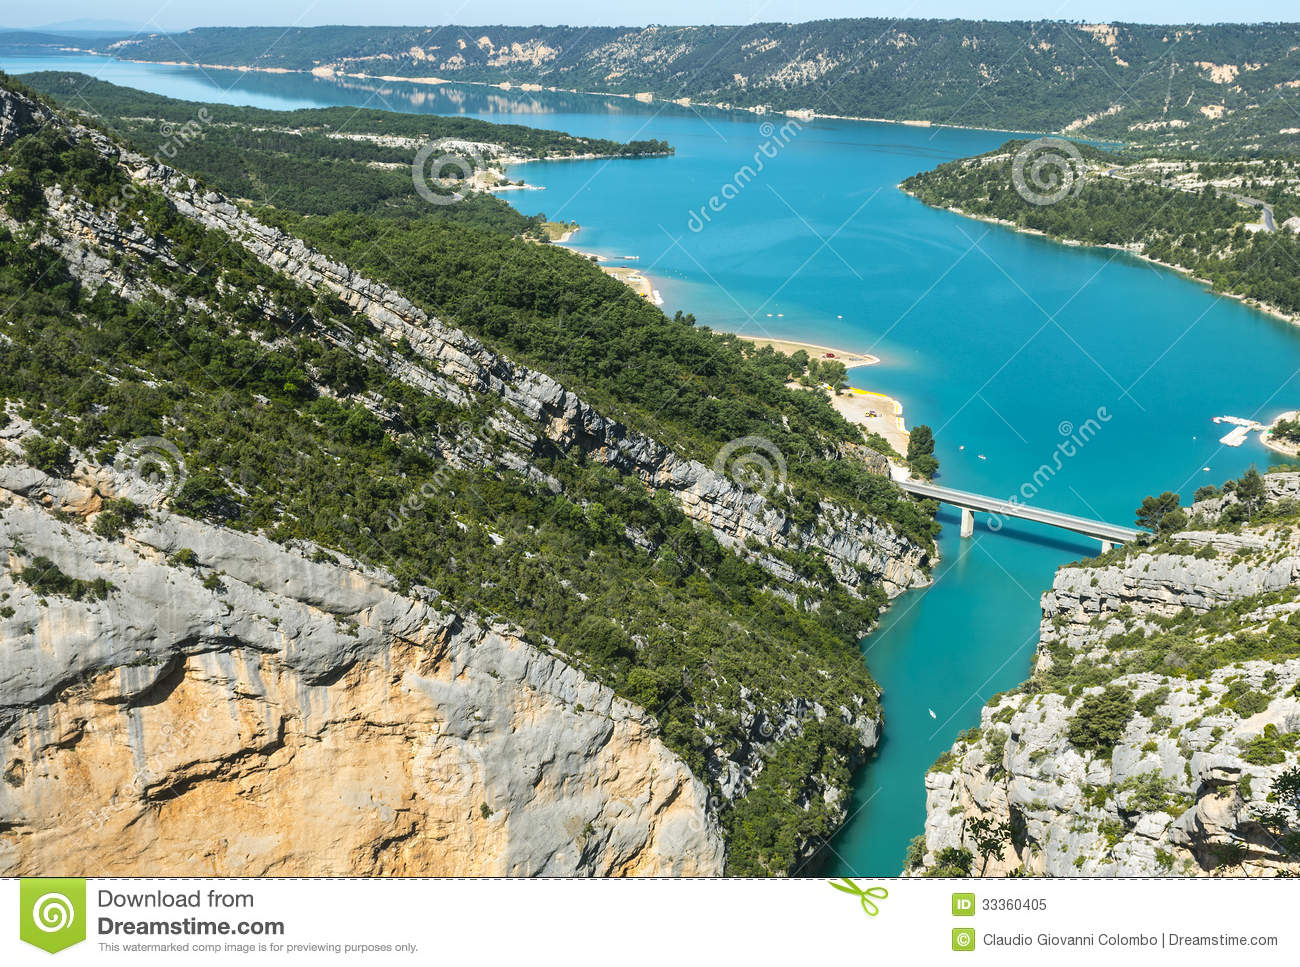 gorges du verdon stock image image of rock d azur 33360405. Black Bedroom Furniture Sets. Home Design Ideas